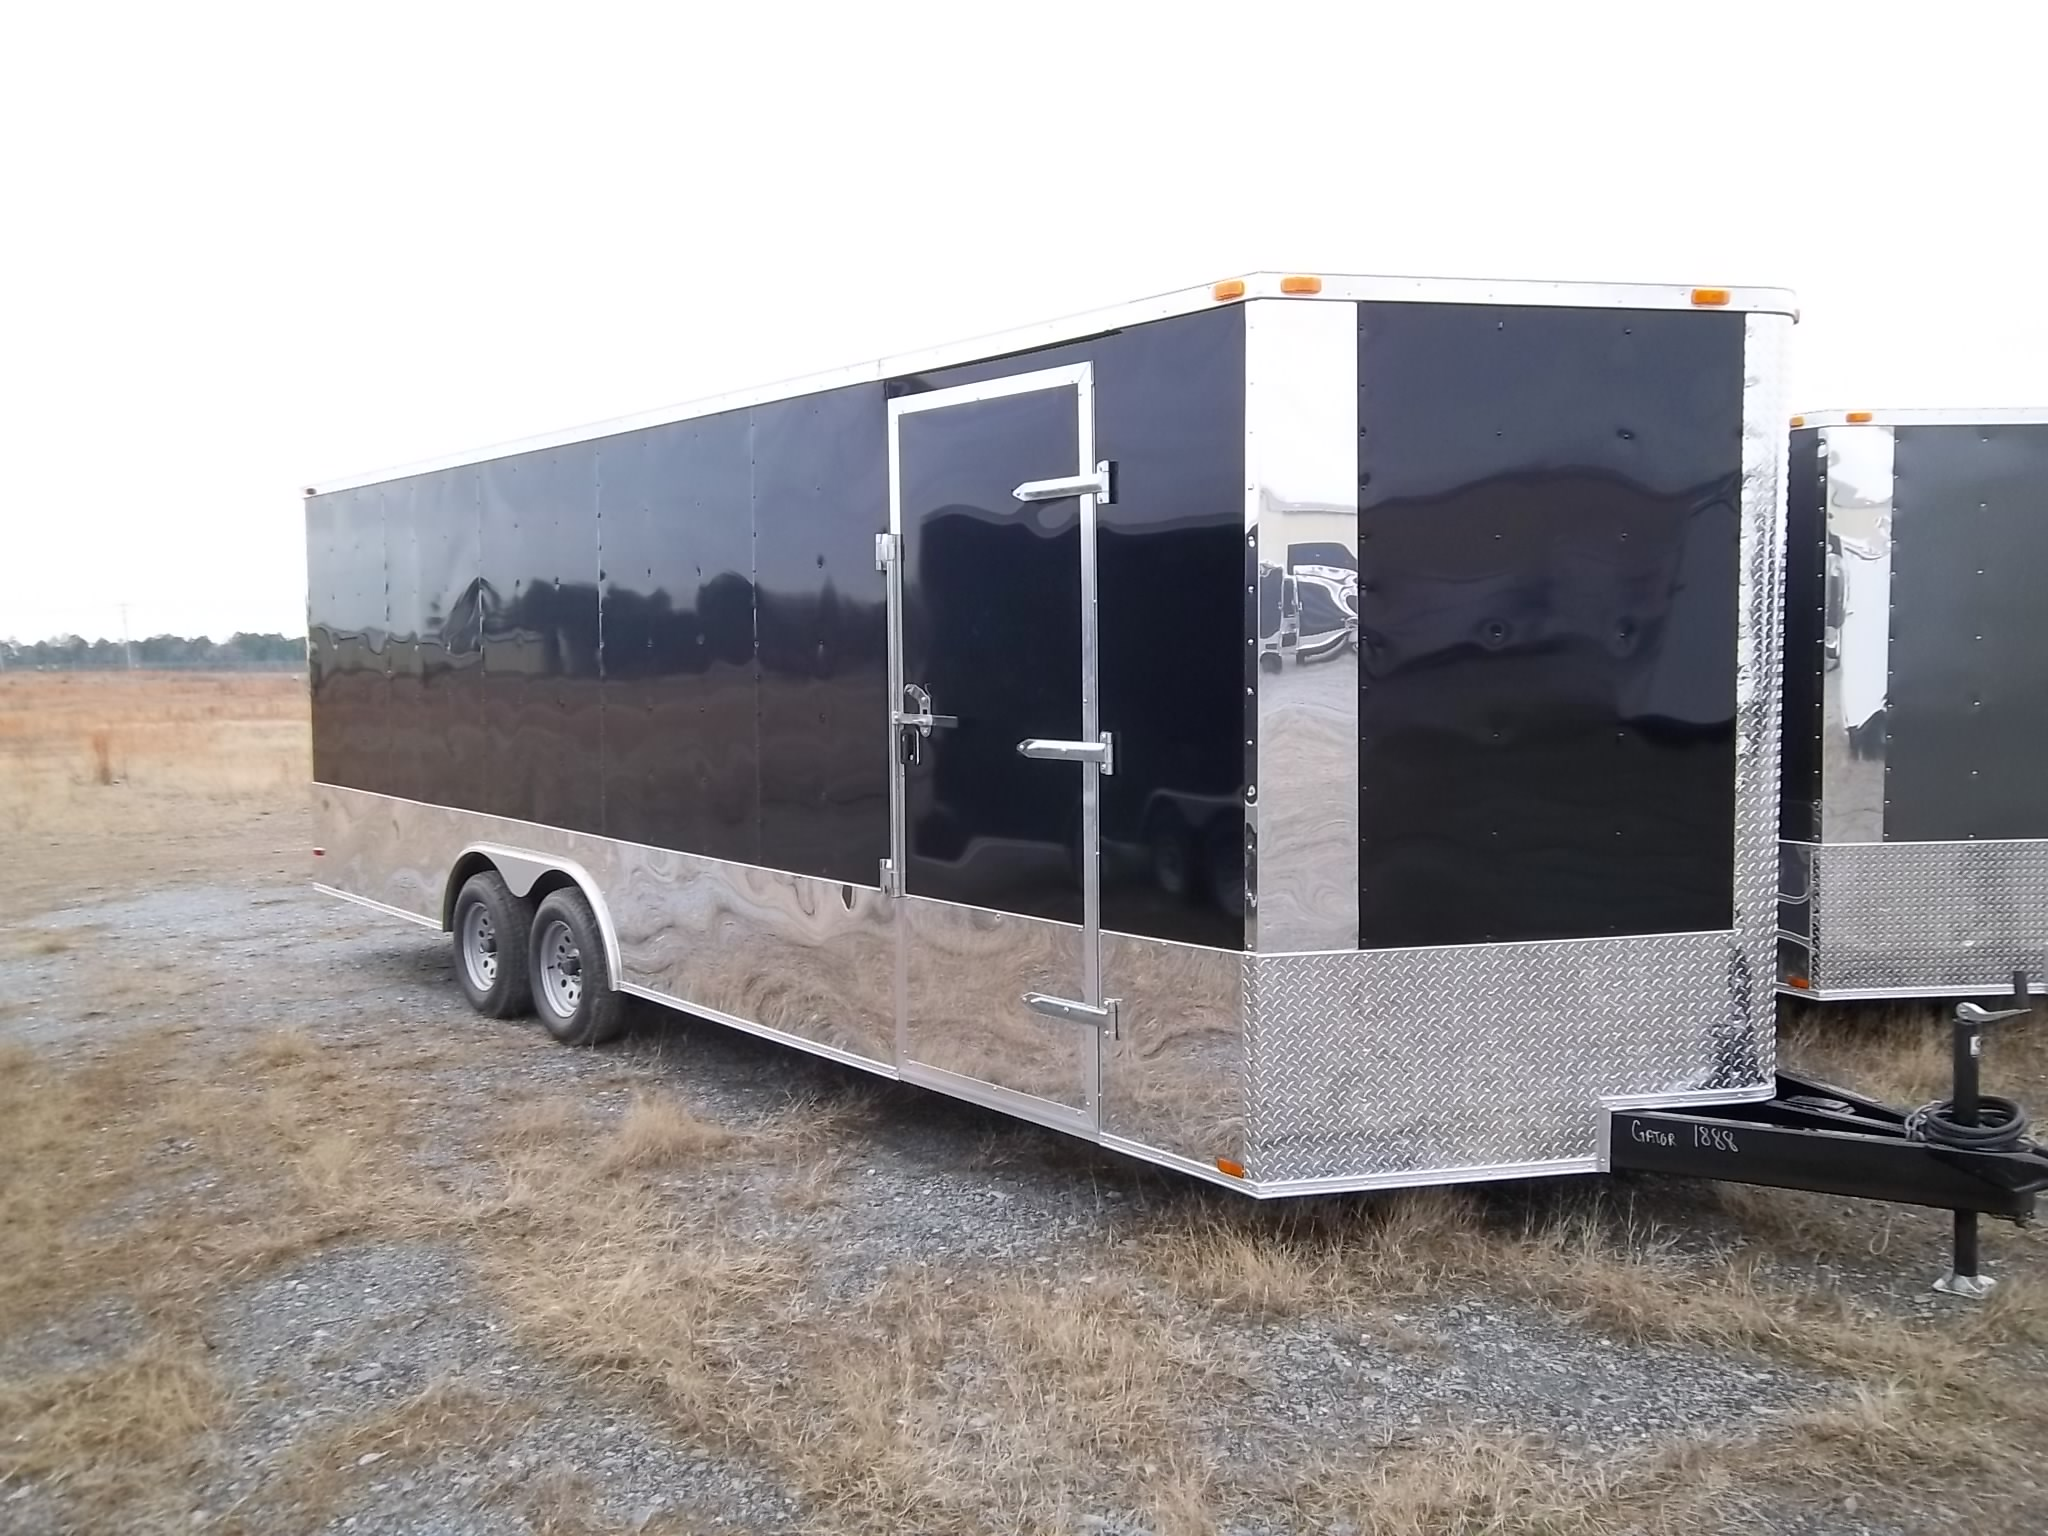 26′ Enclosed Cargo Auto Car Hauler 8.5 x 26 – 9990 GVWR/GWR